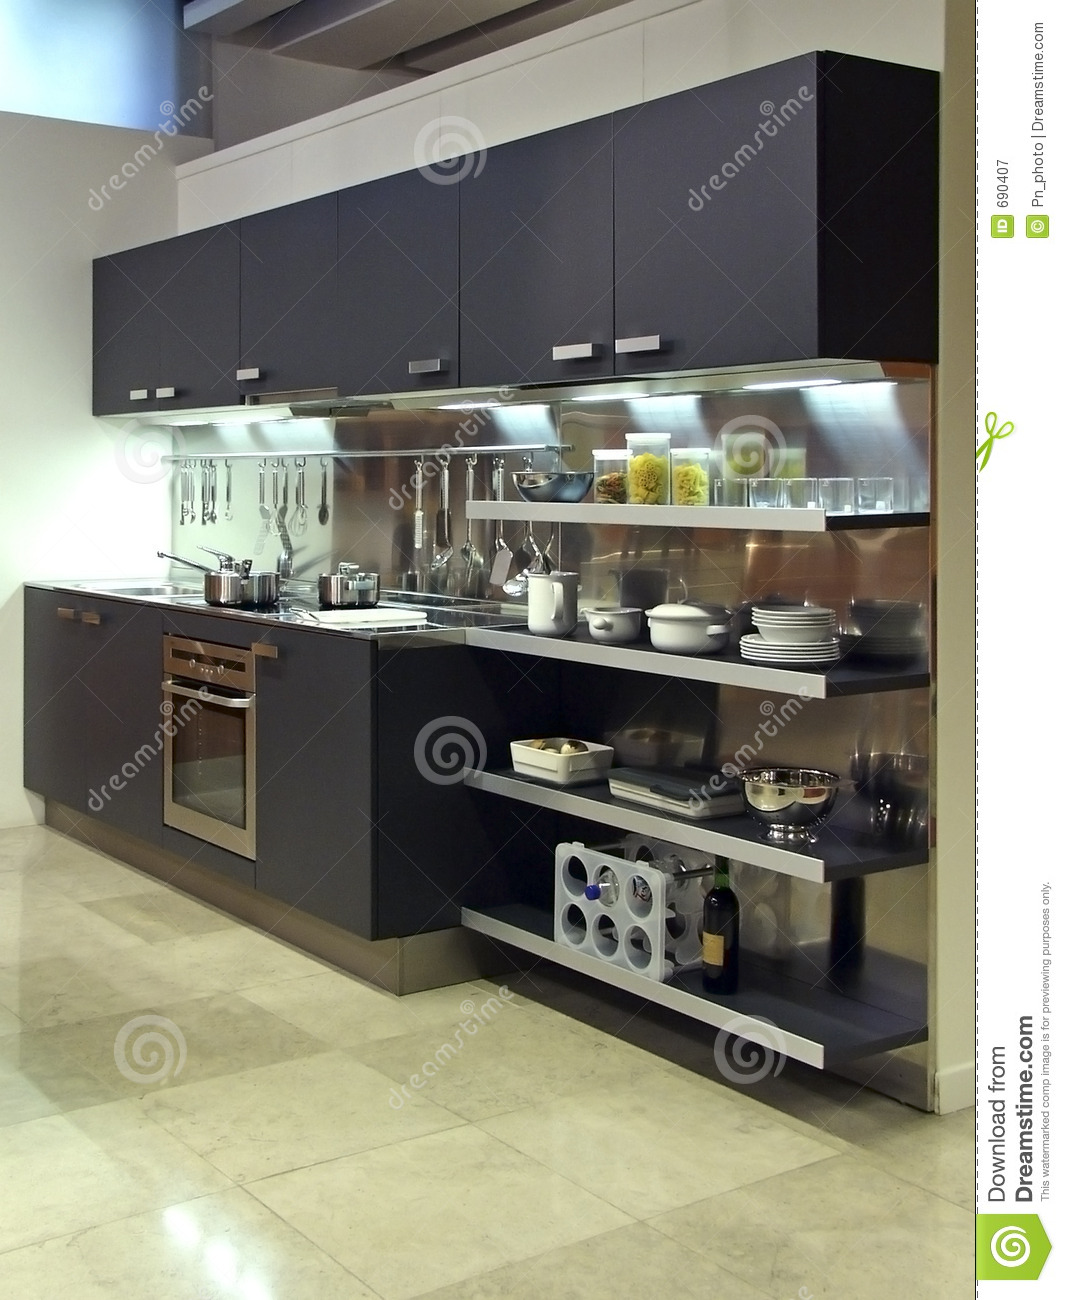 Kitchen Design Arch: Modern Kitchen Architecture 03 Stock Image